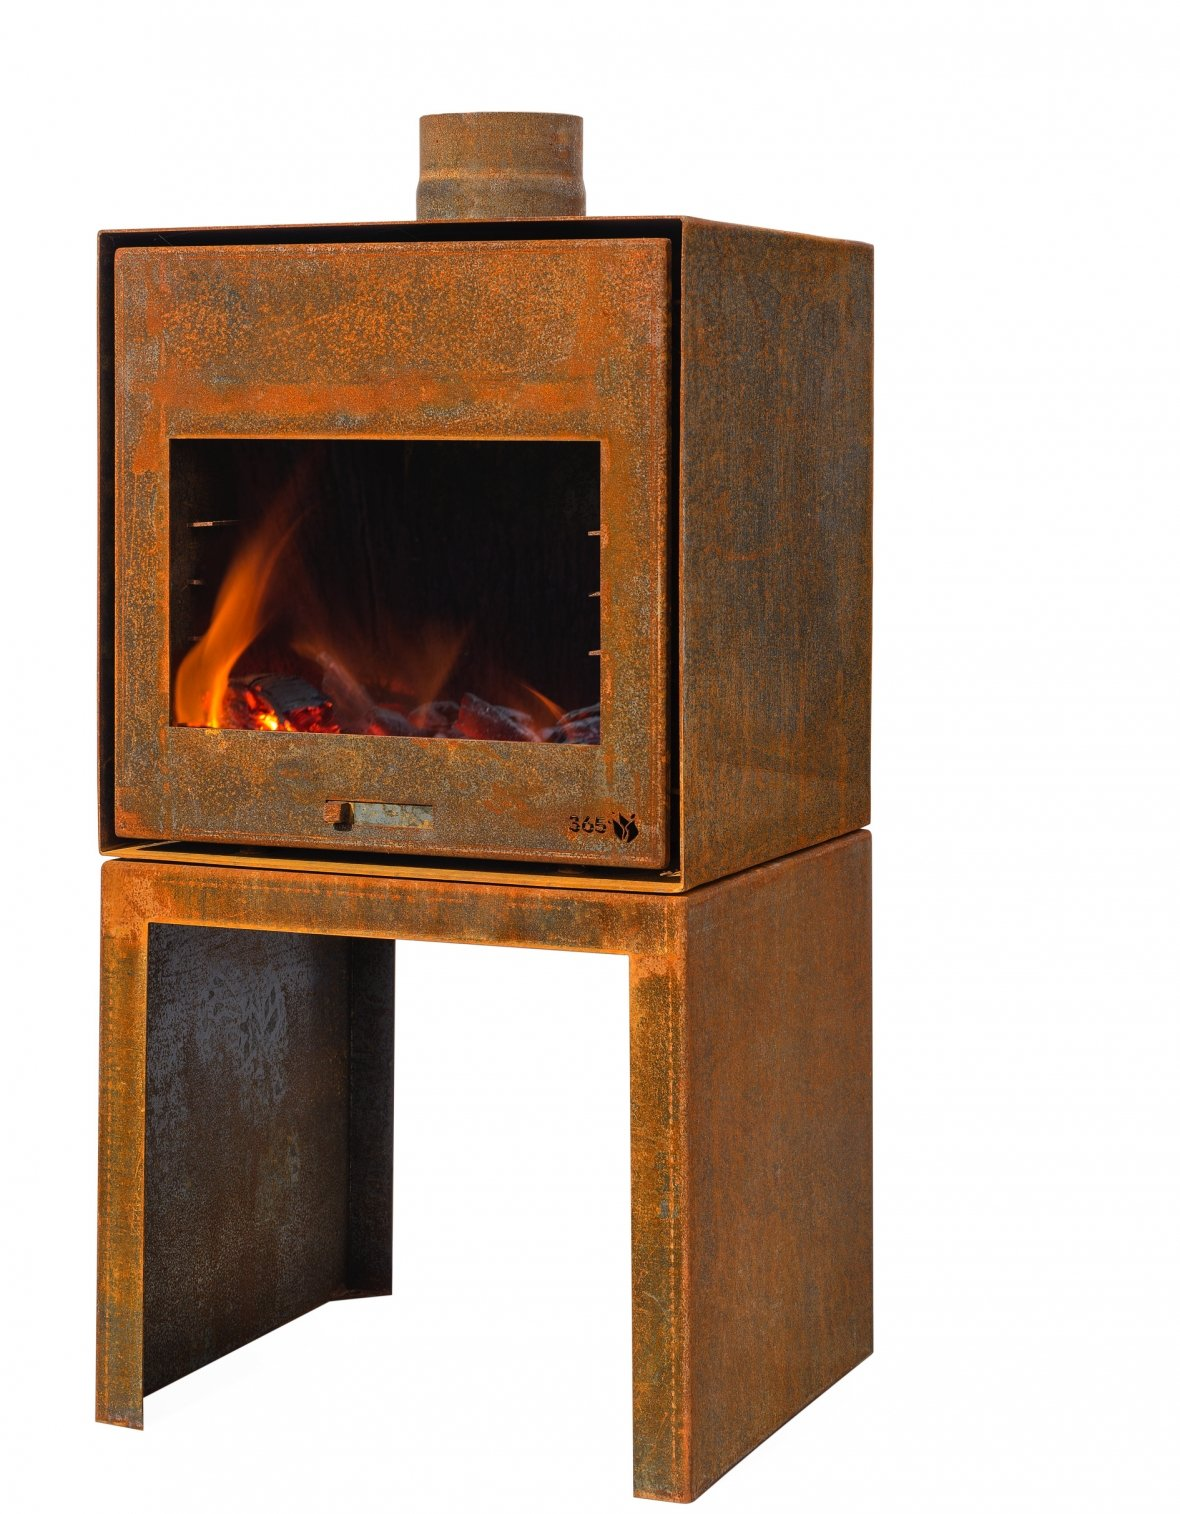 Sturdy garden fireplace with character